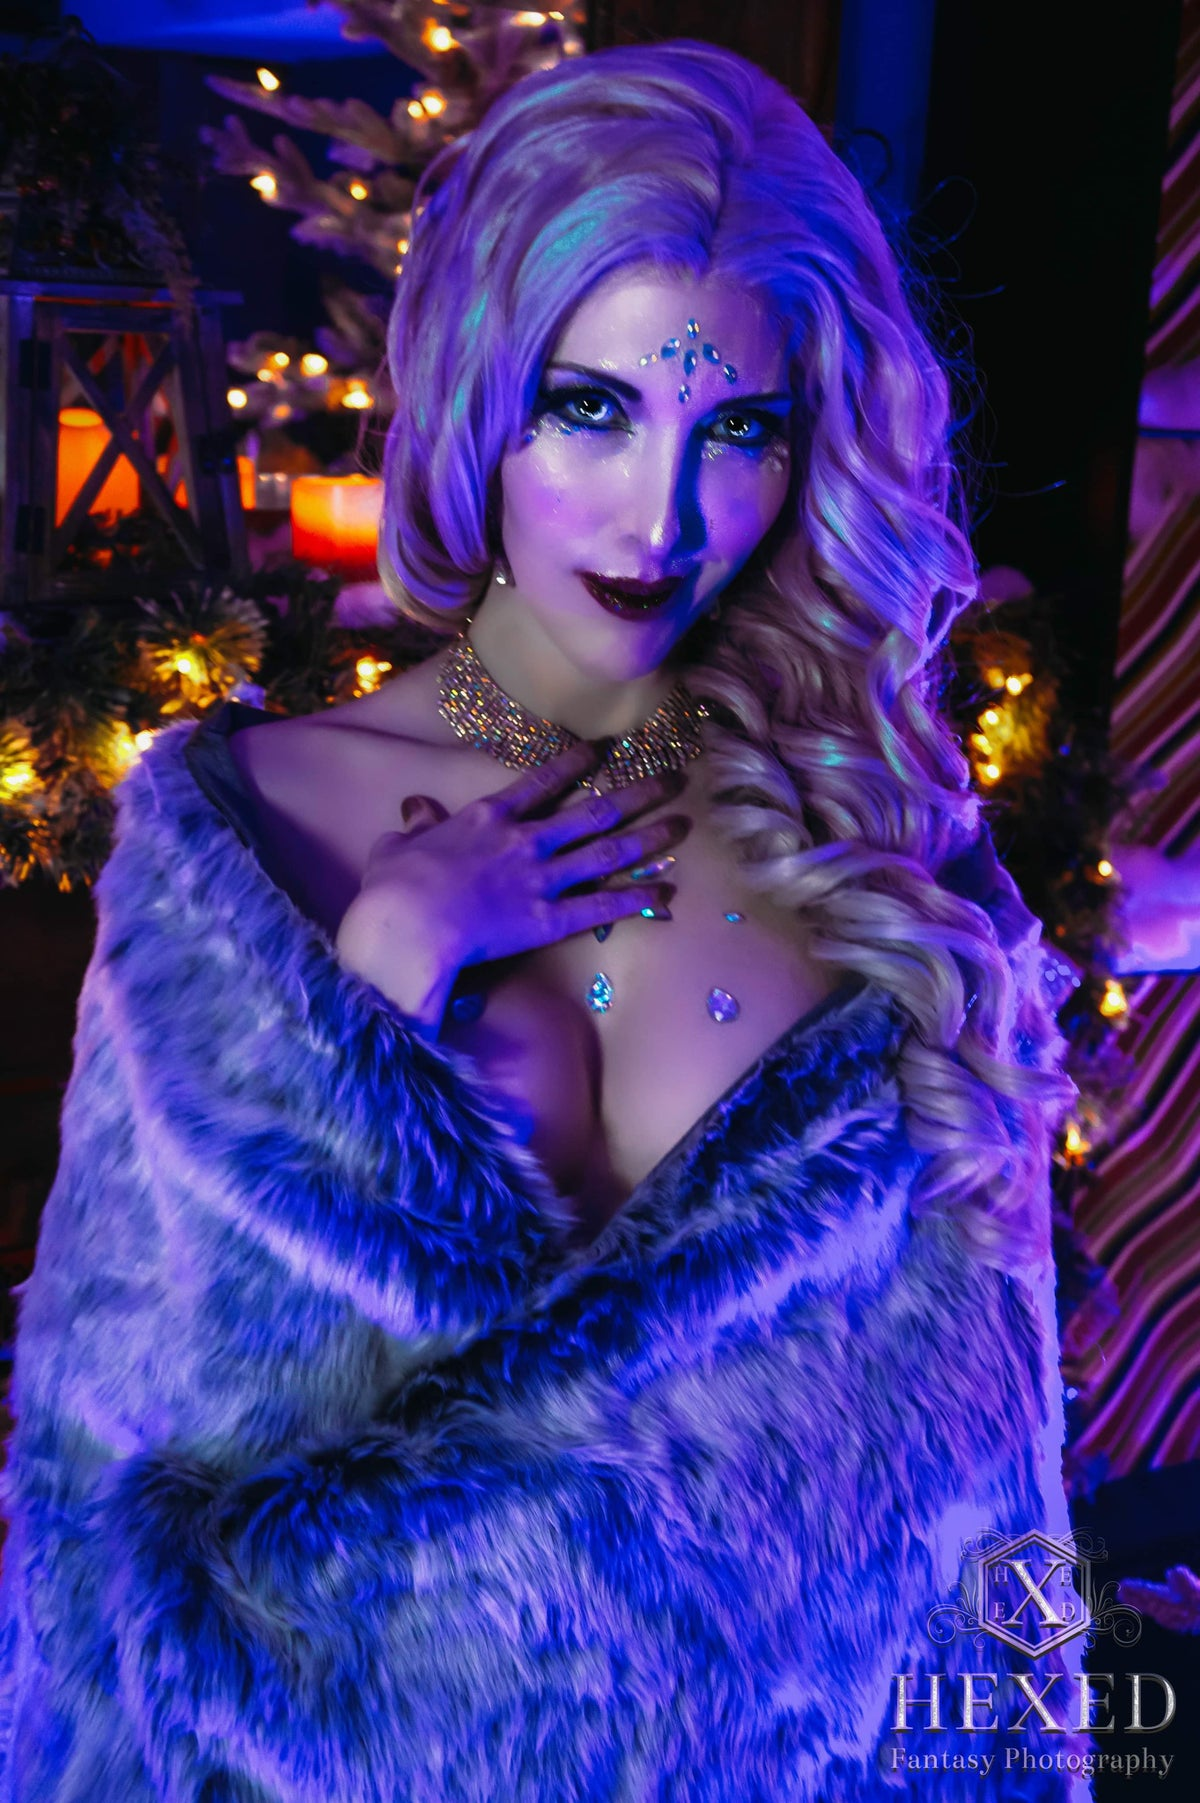 Image of Ice queen Holiday Shoot 2019 (with implied nudes)